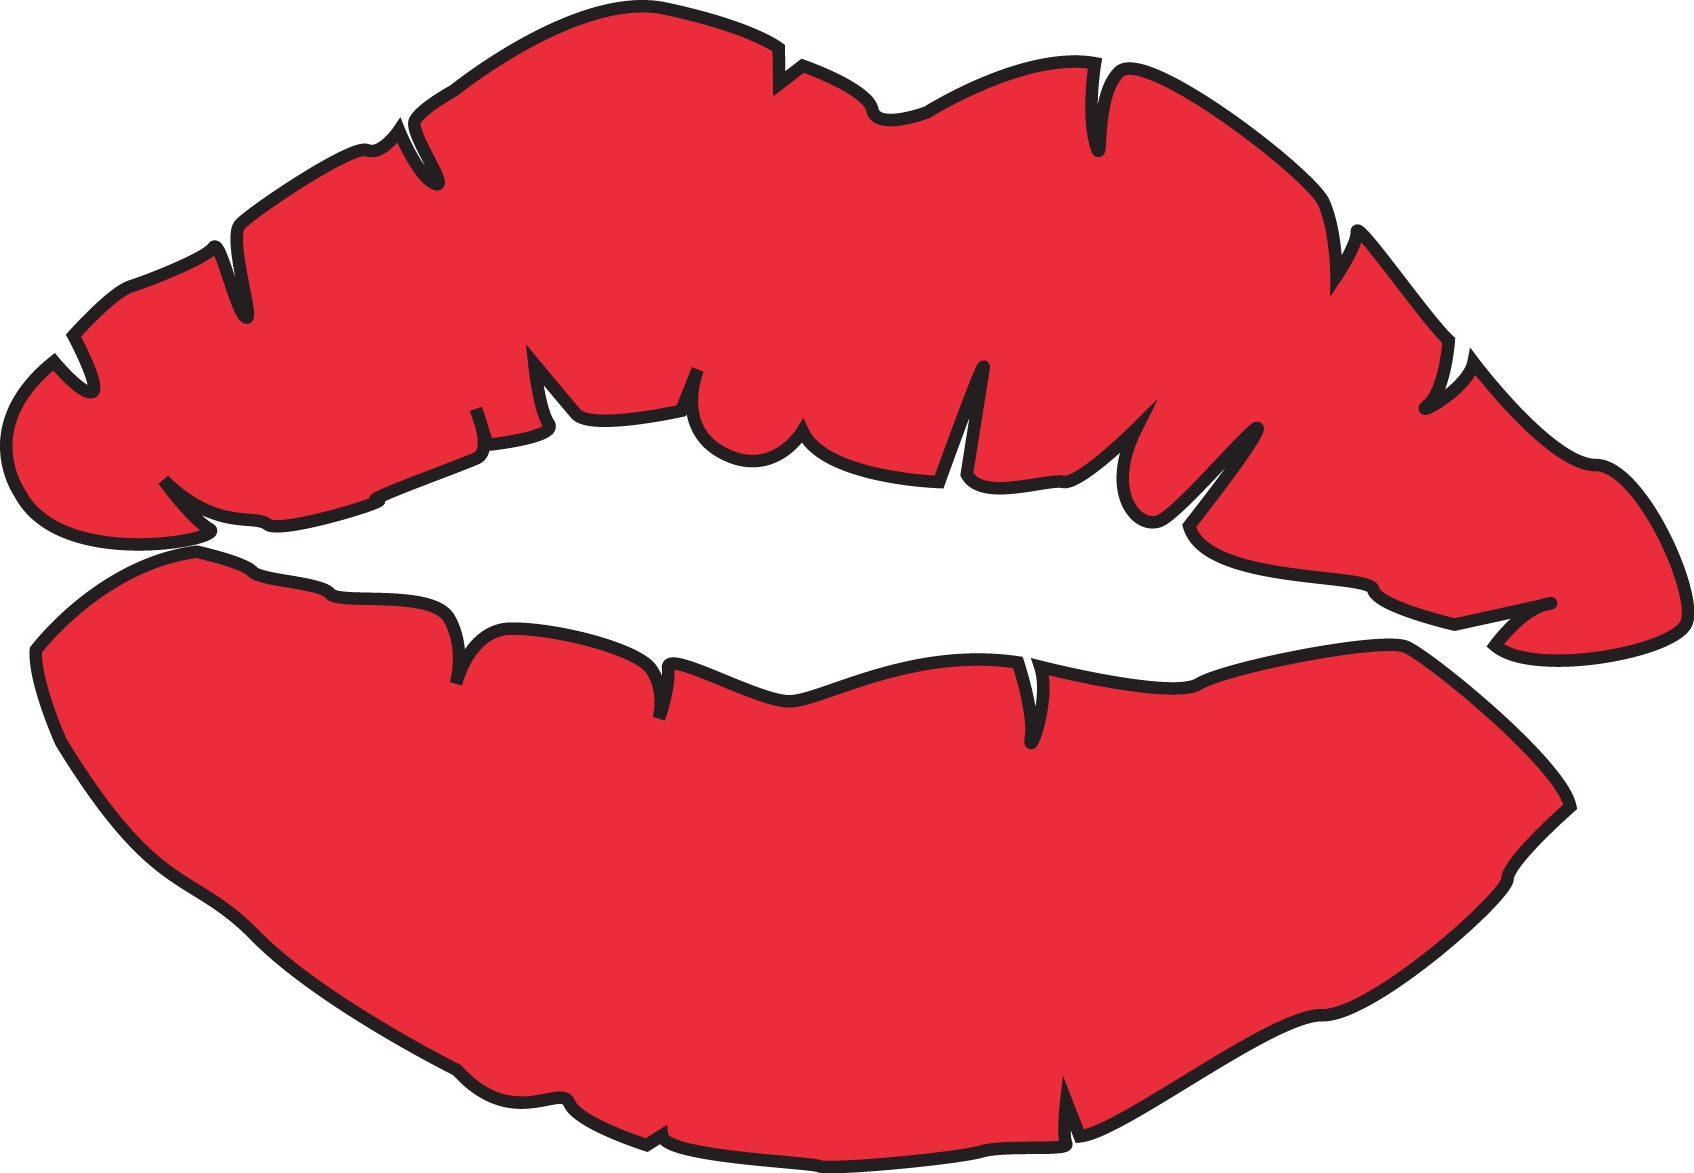 banner royalty free stock Mustache clipart lipstick. Cartoon free on dumielauxepices.